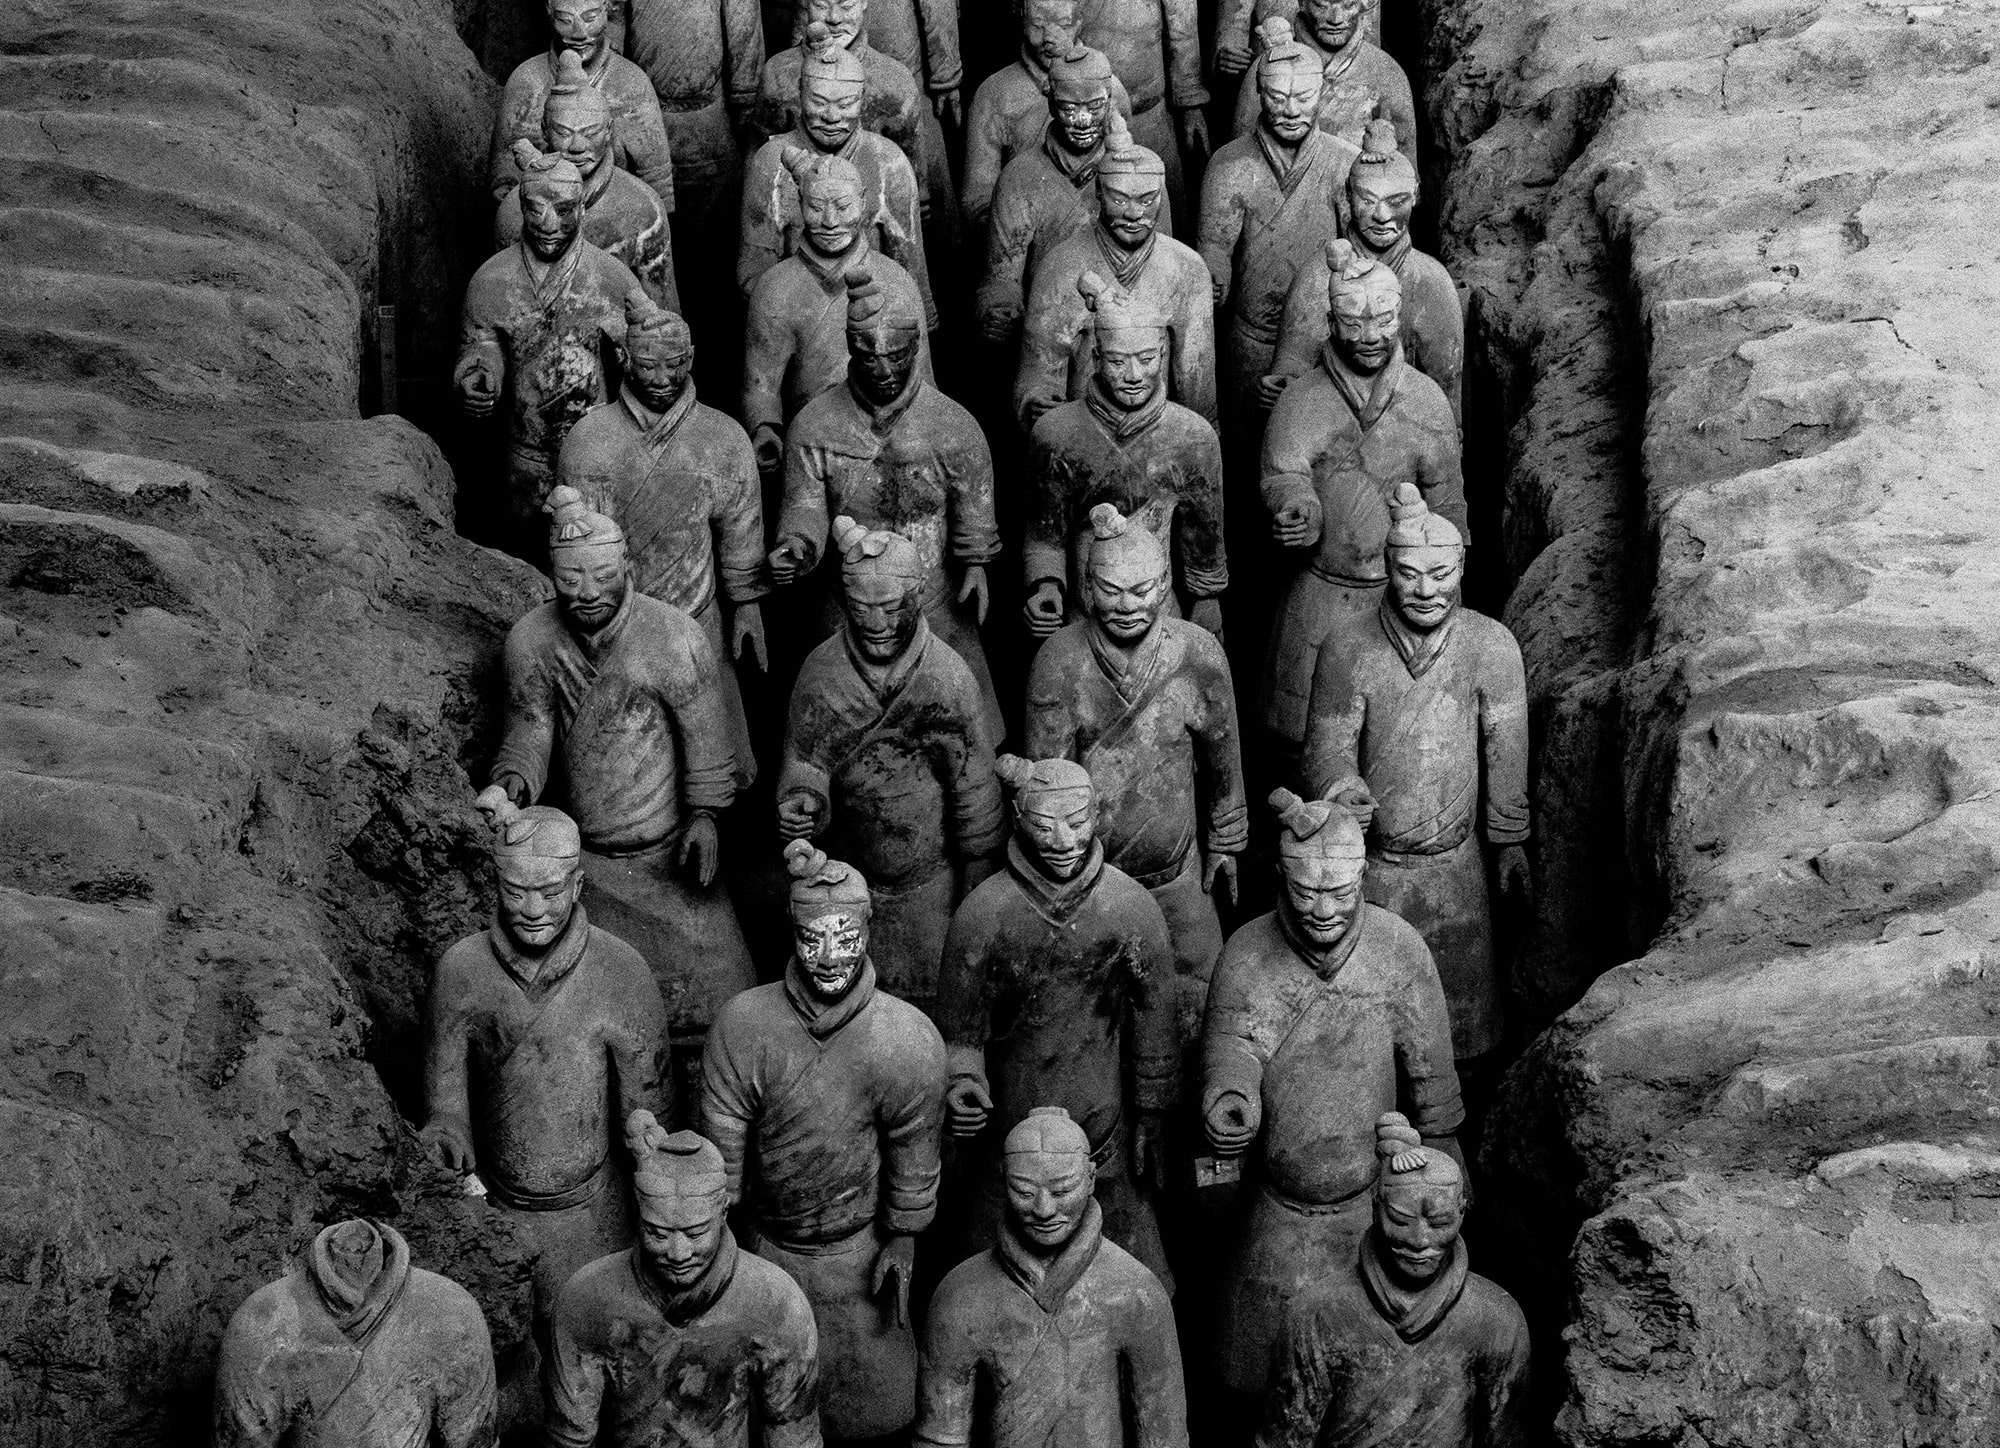 March of the terracotta warriors